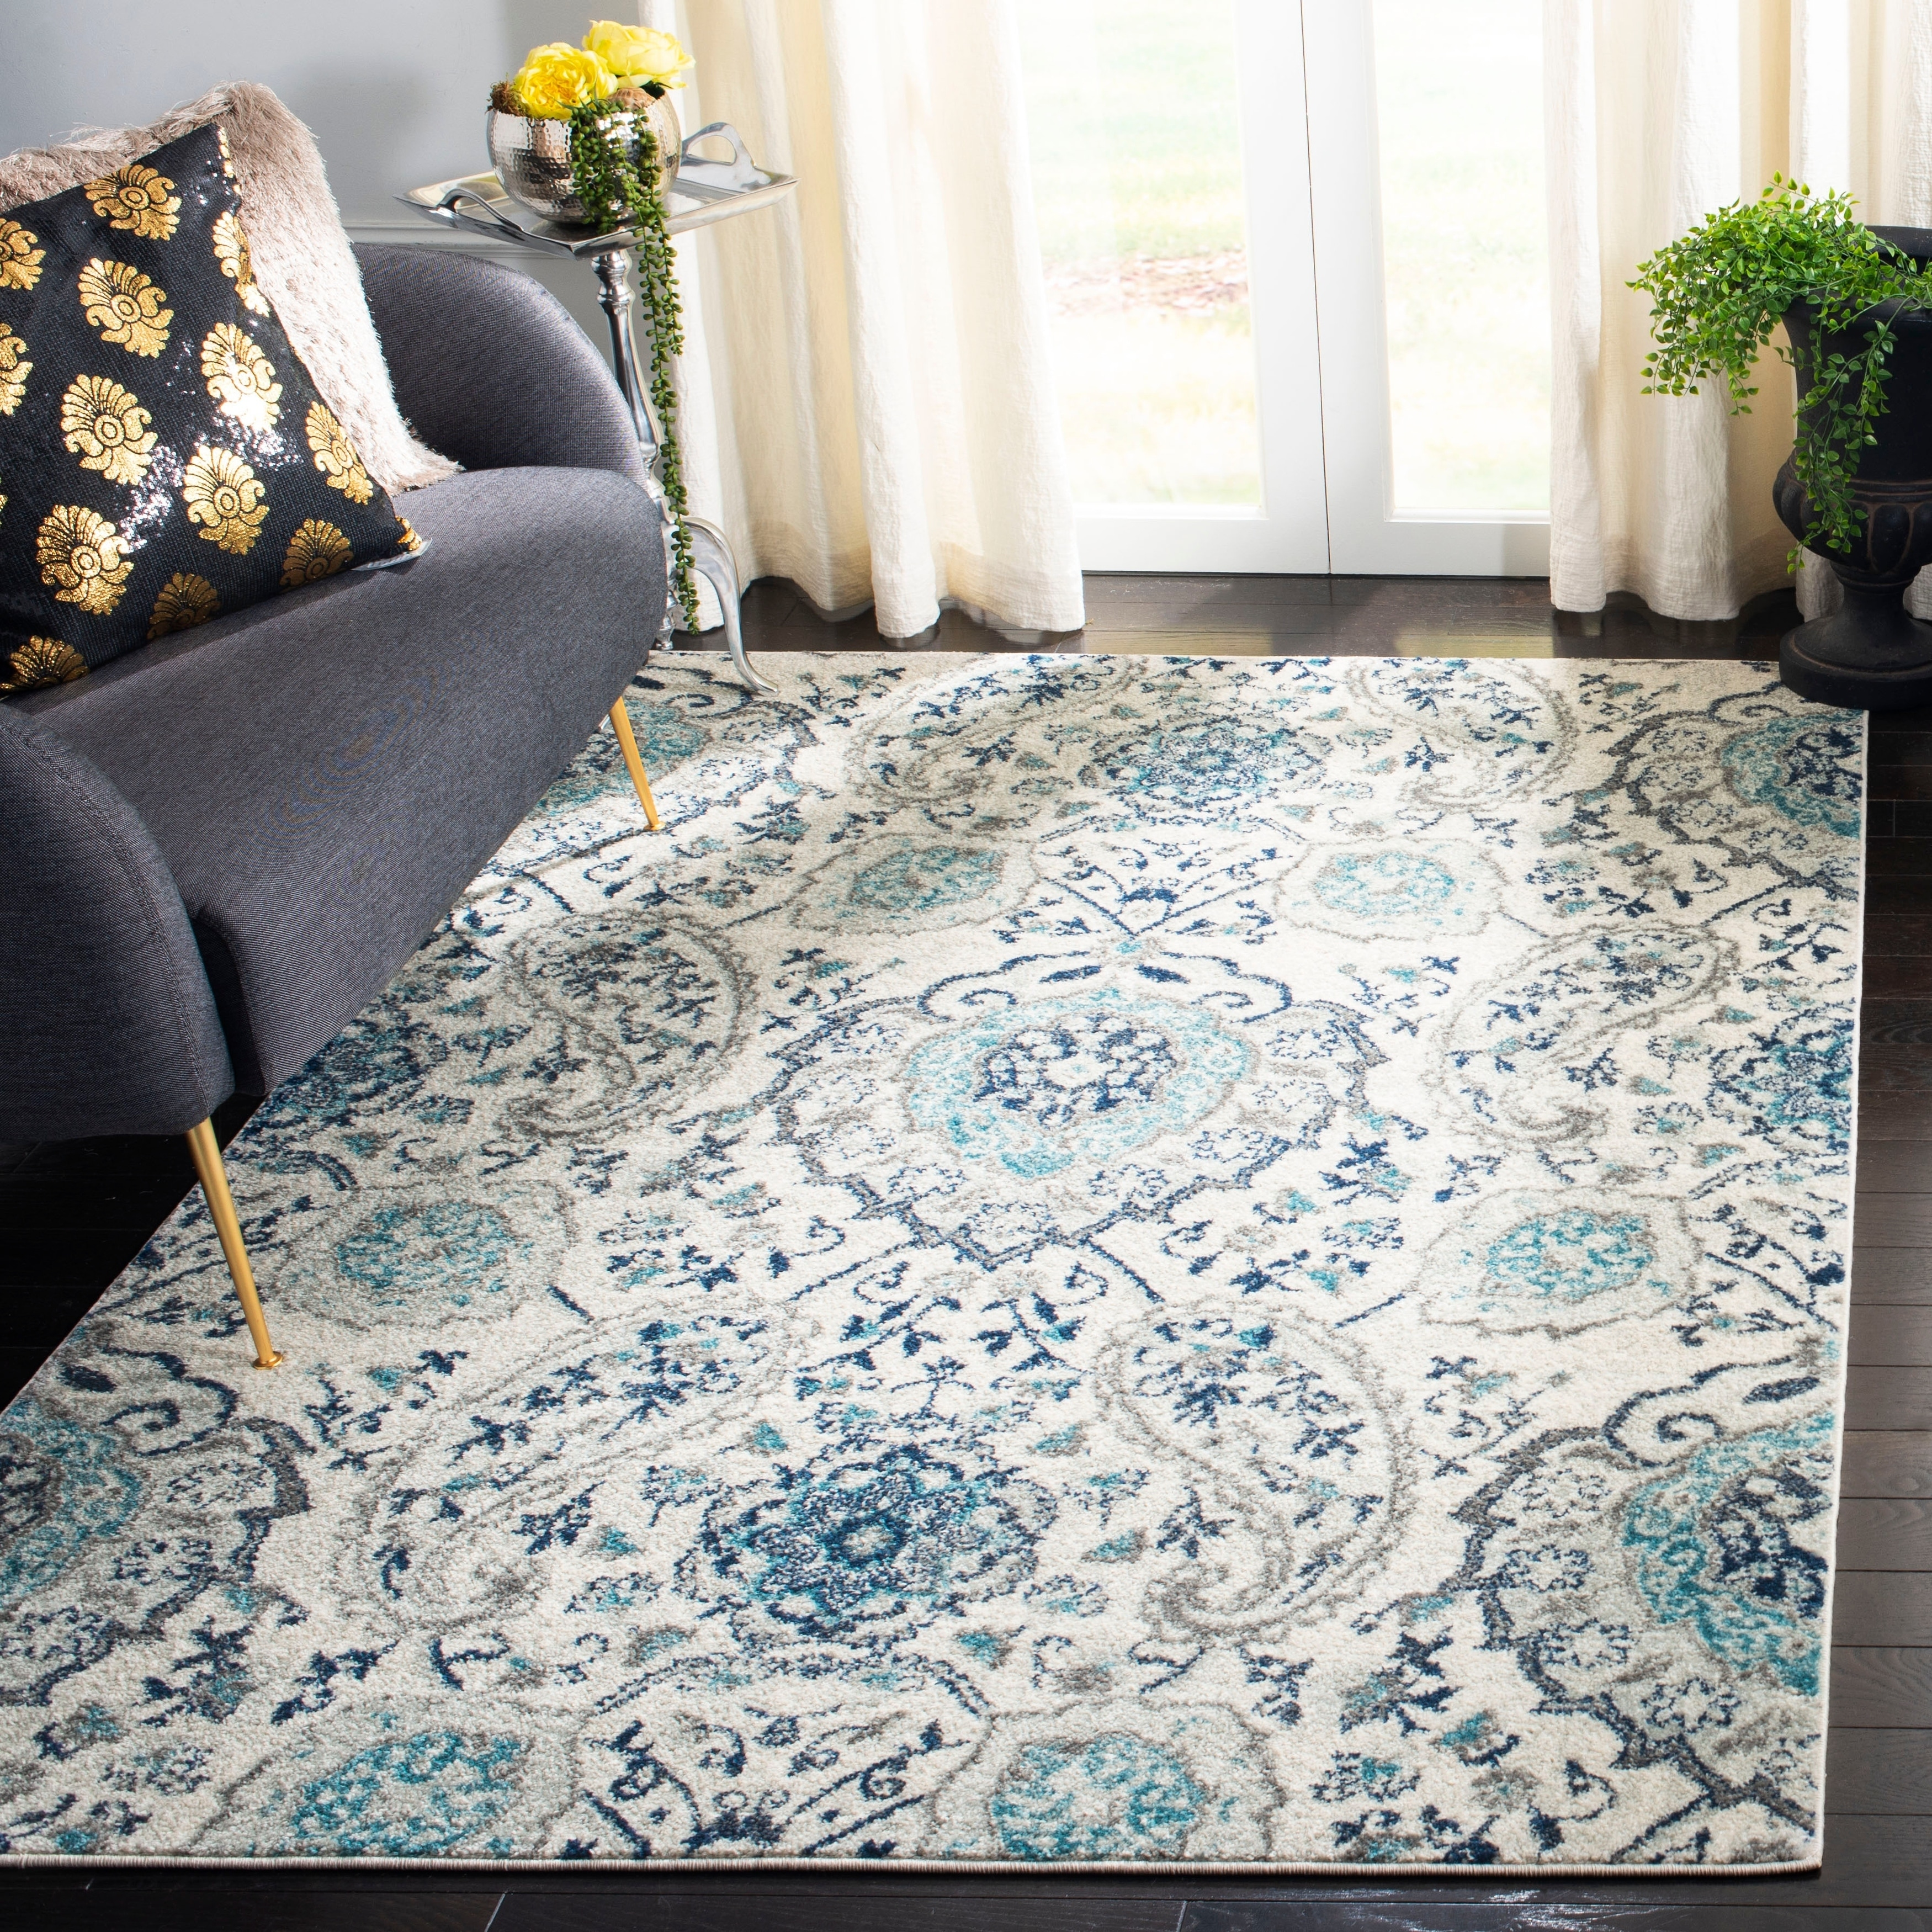 Safavieh Madison Heather Floral Paisley Area Rug Or Runner